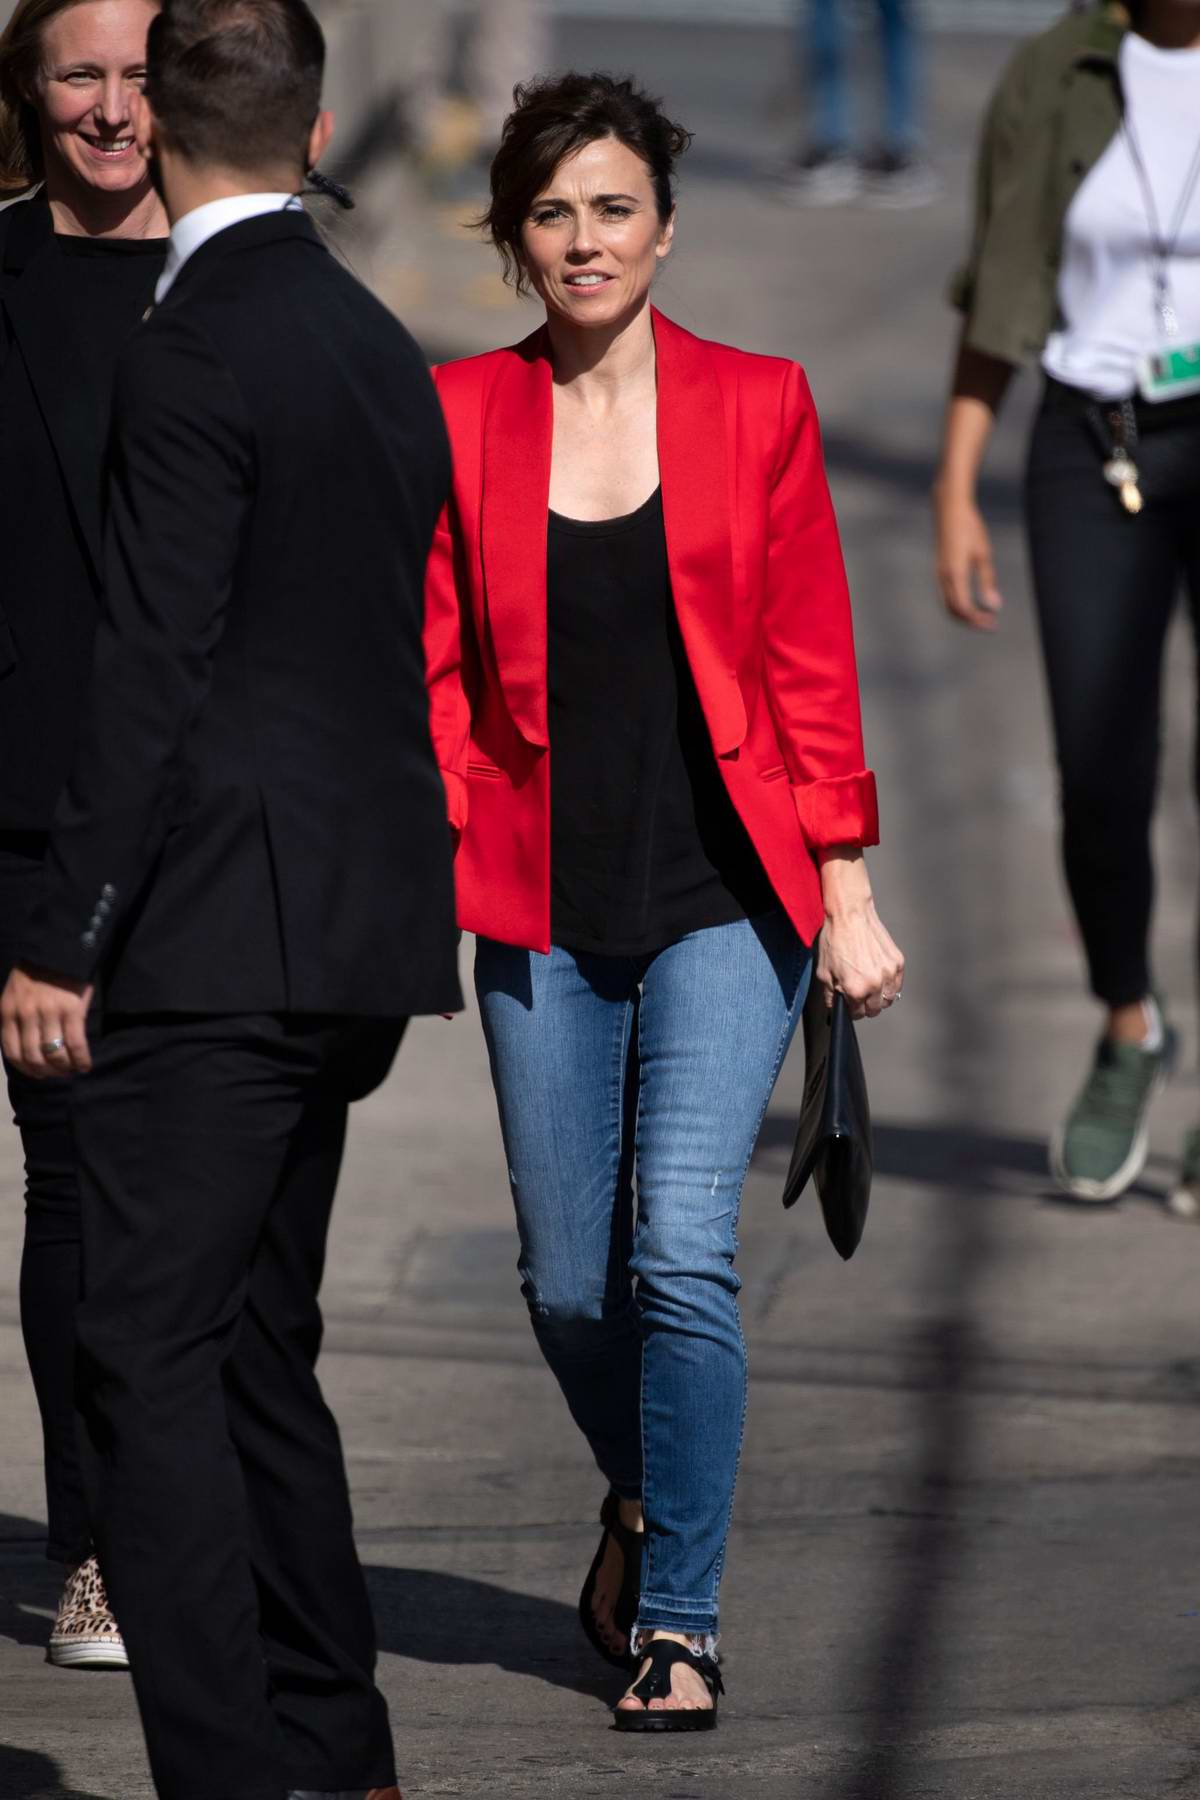 Linda Cardellini waves for the camera as she visits Jimmy Kimmel Live! in Hollywood, California